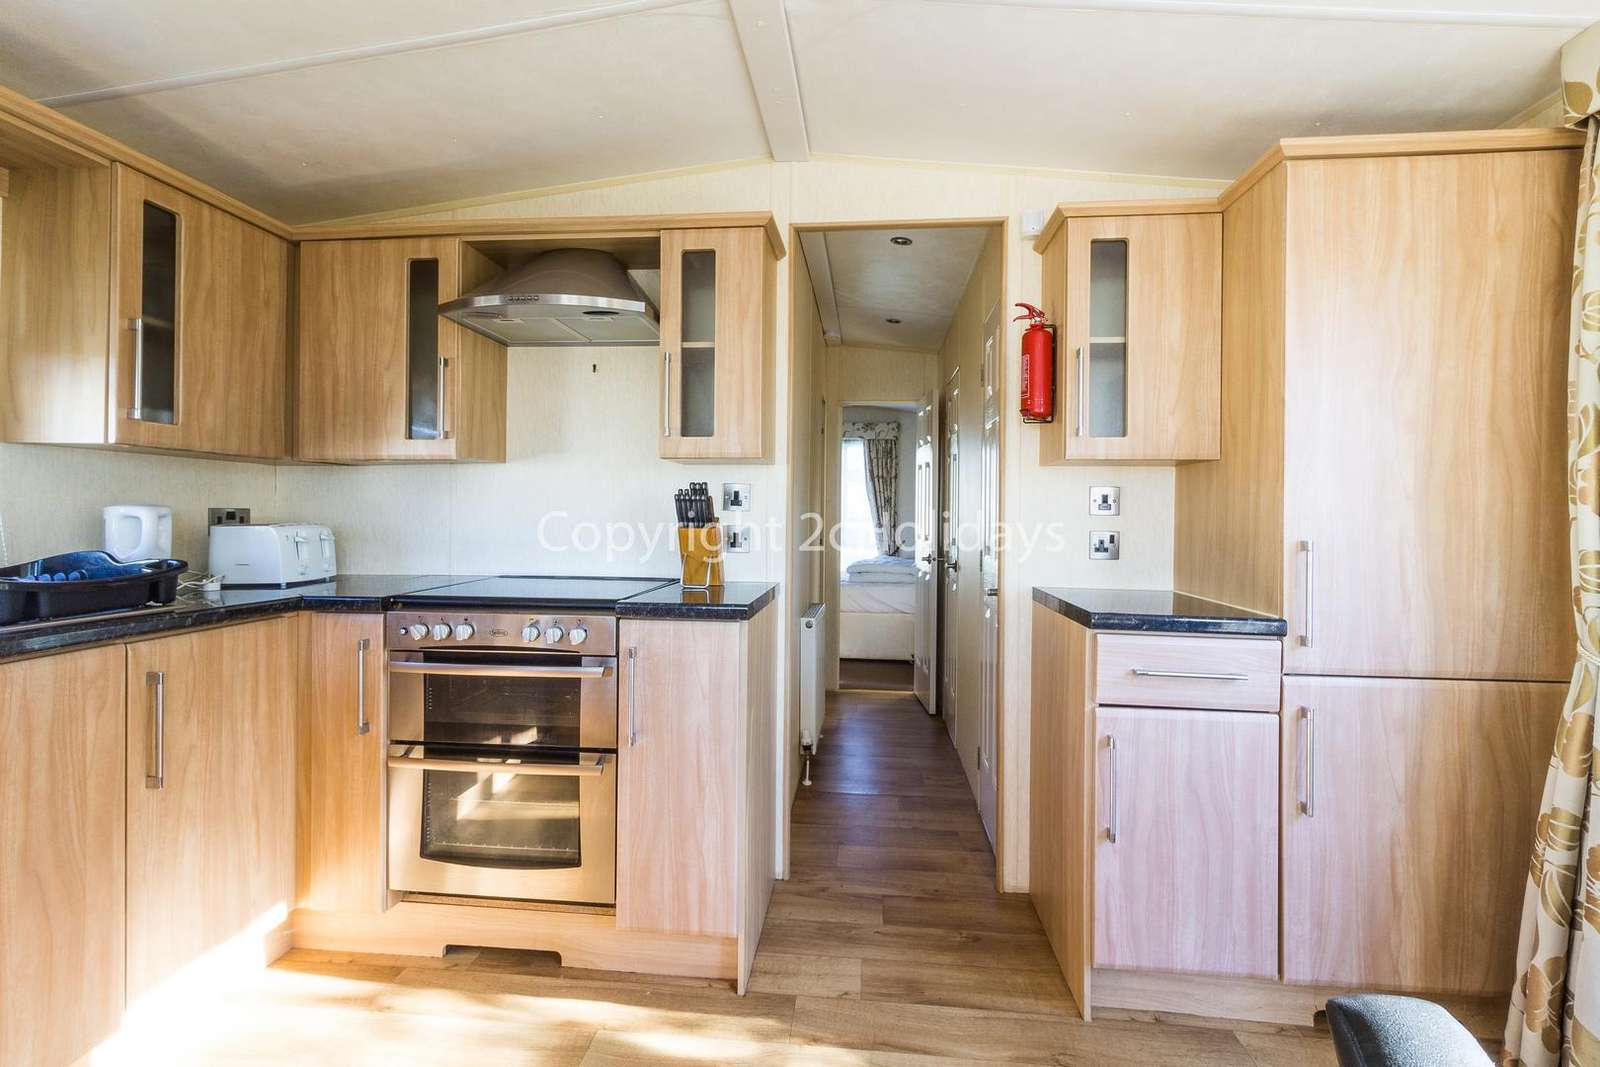 The kitchen includes a full size oven and full size fridge/freezer!